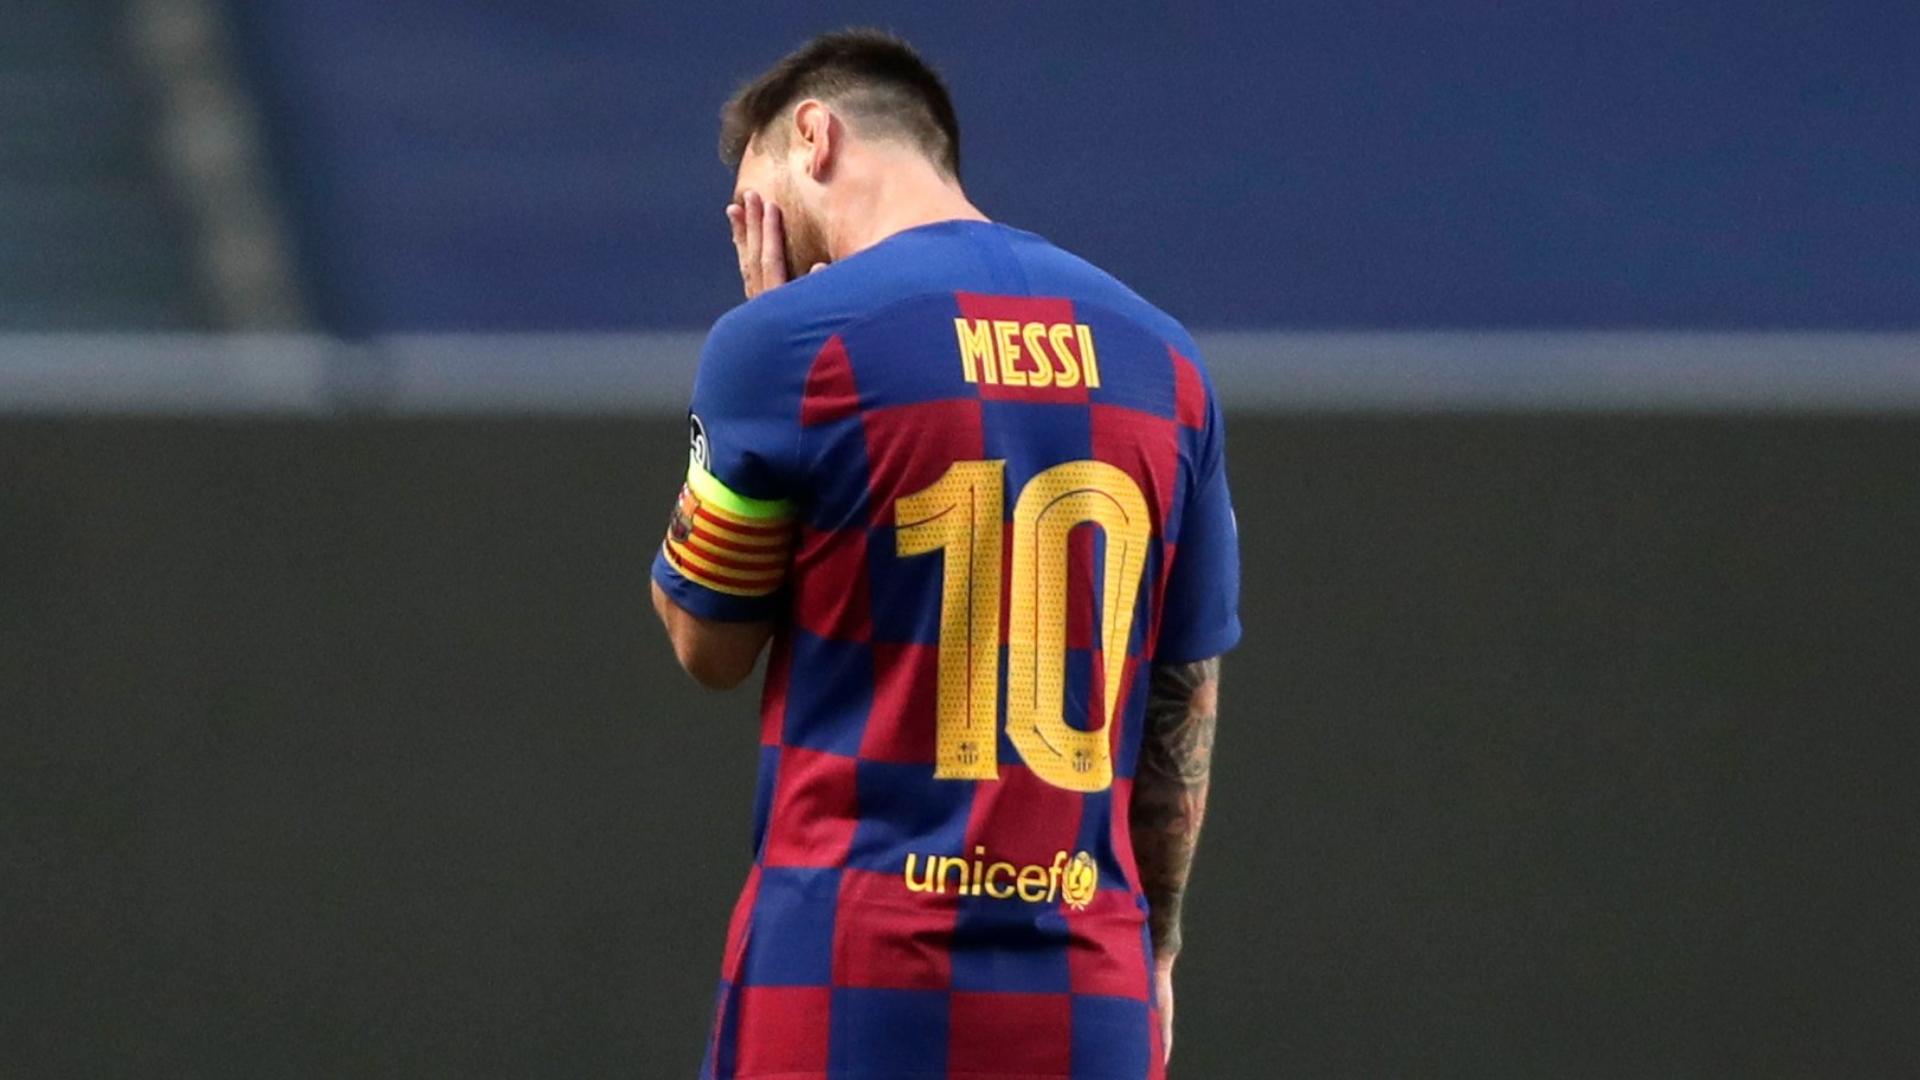 Transfer news and rumours LIVE: Messi closer to leaving than staying at Barca